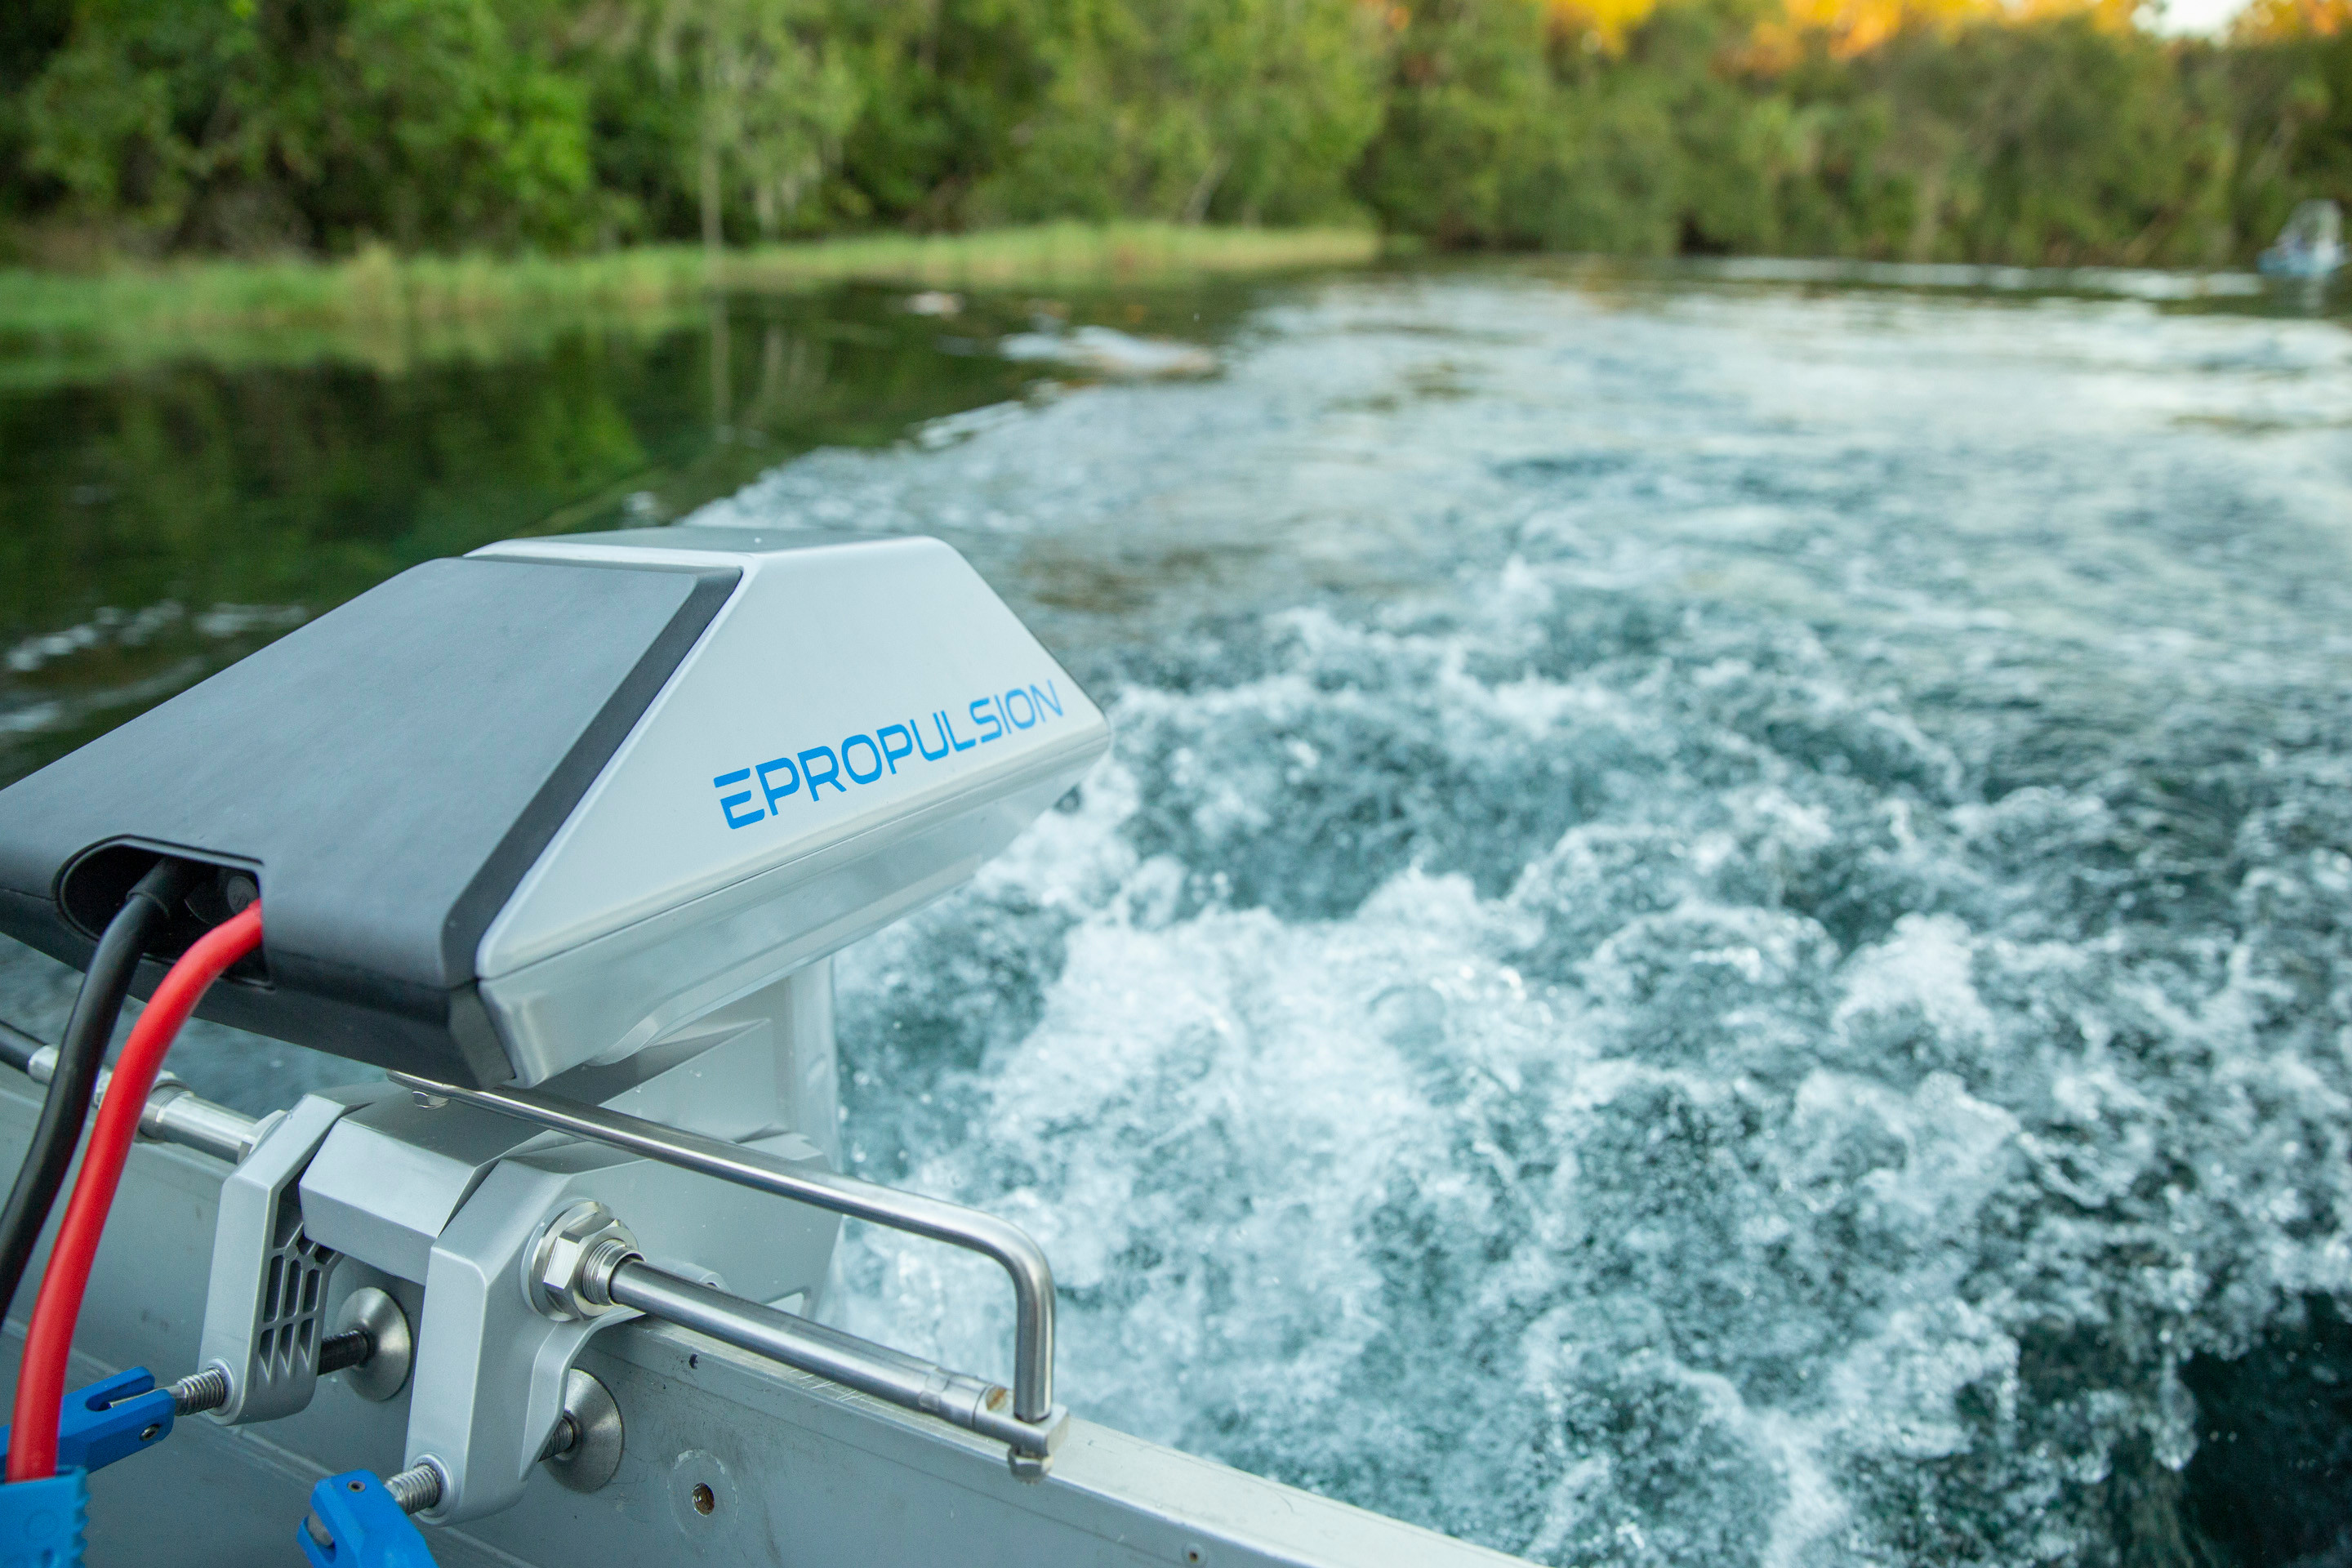 Navy 6 0 Electric Outboard Motor 9 9 HP | ePropulsion